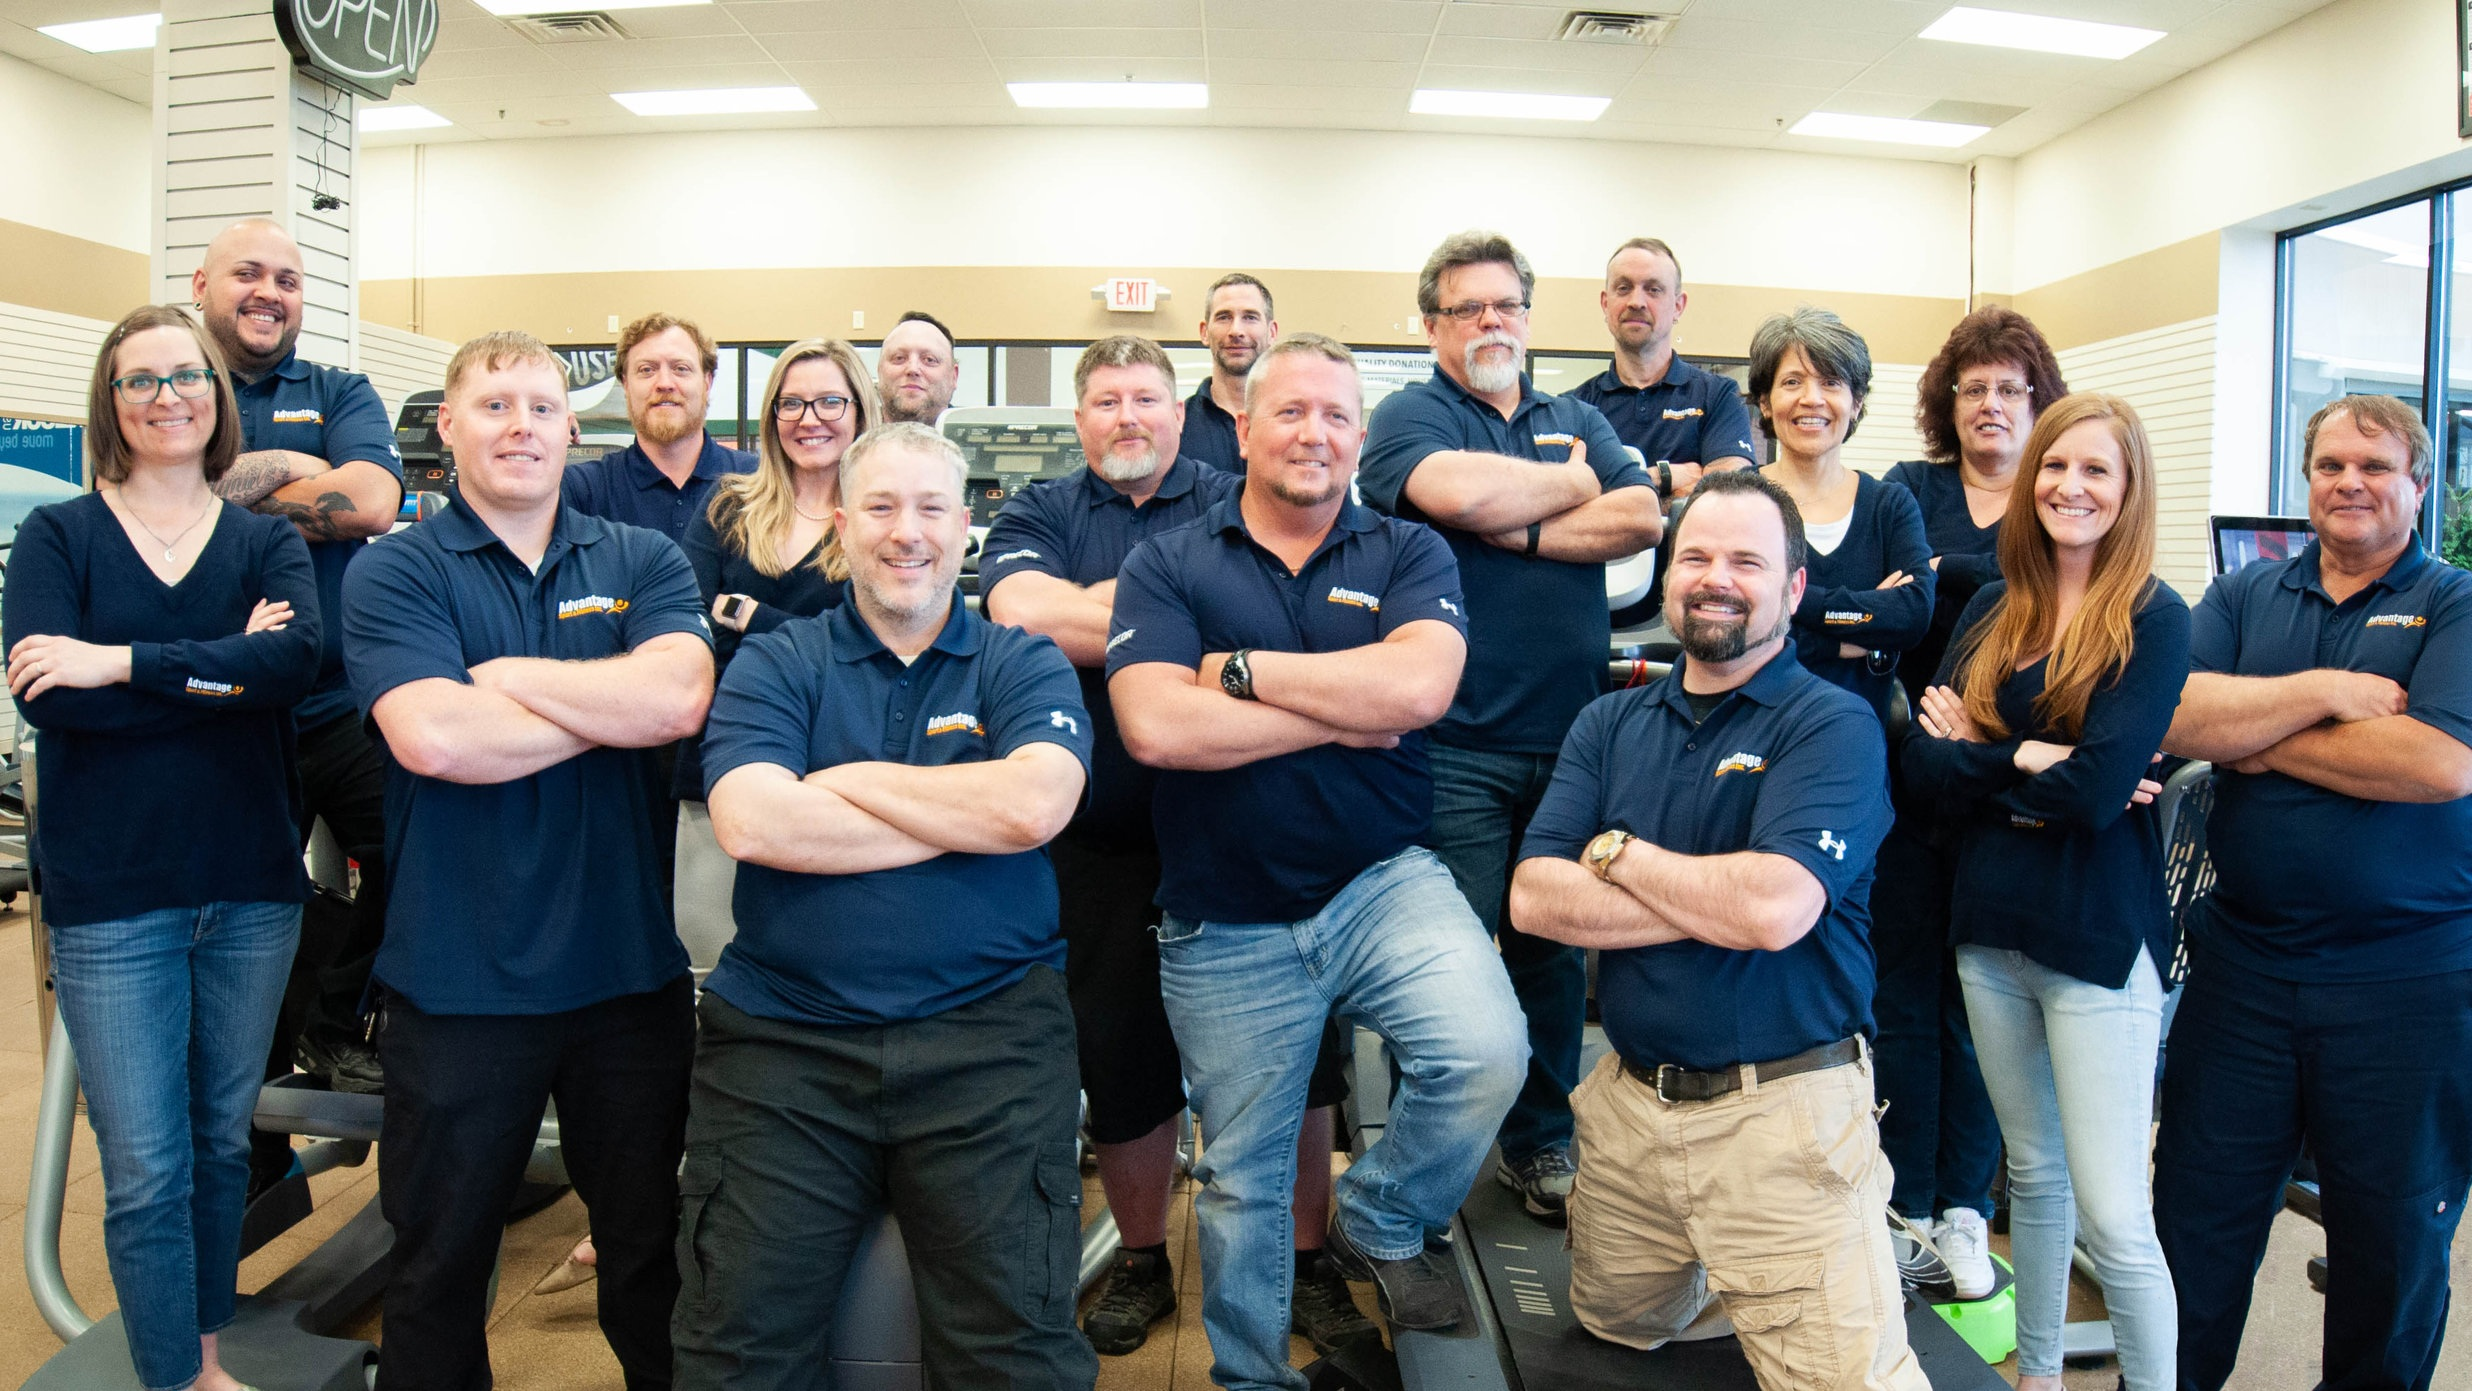 OUR CUSTOMER SERVICE TEAM Our Precor-certified service technicians offer equipment repair and preventative maintenance for facilities located in Upstate New York, Pennsylvania, West Virginia, and North Carolina.